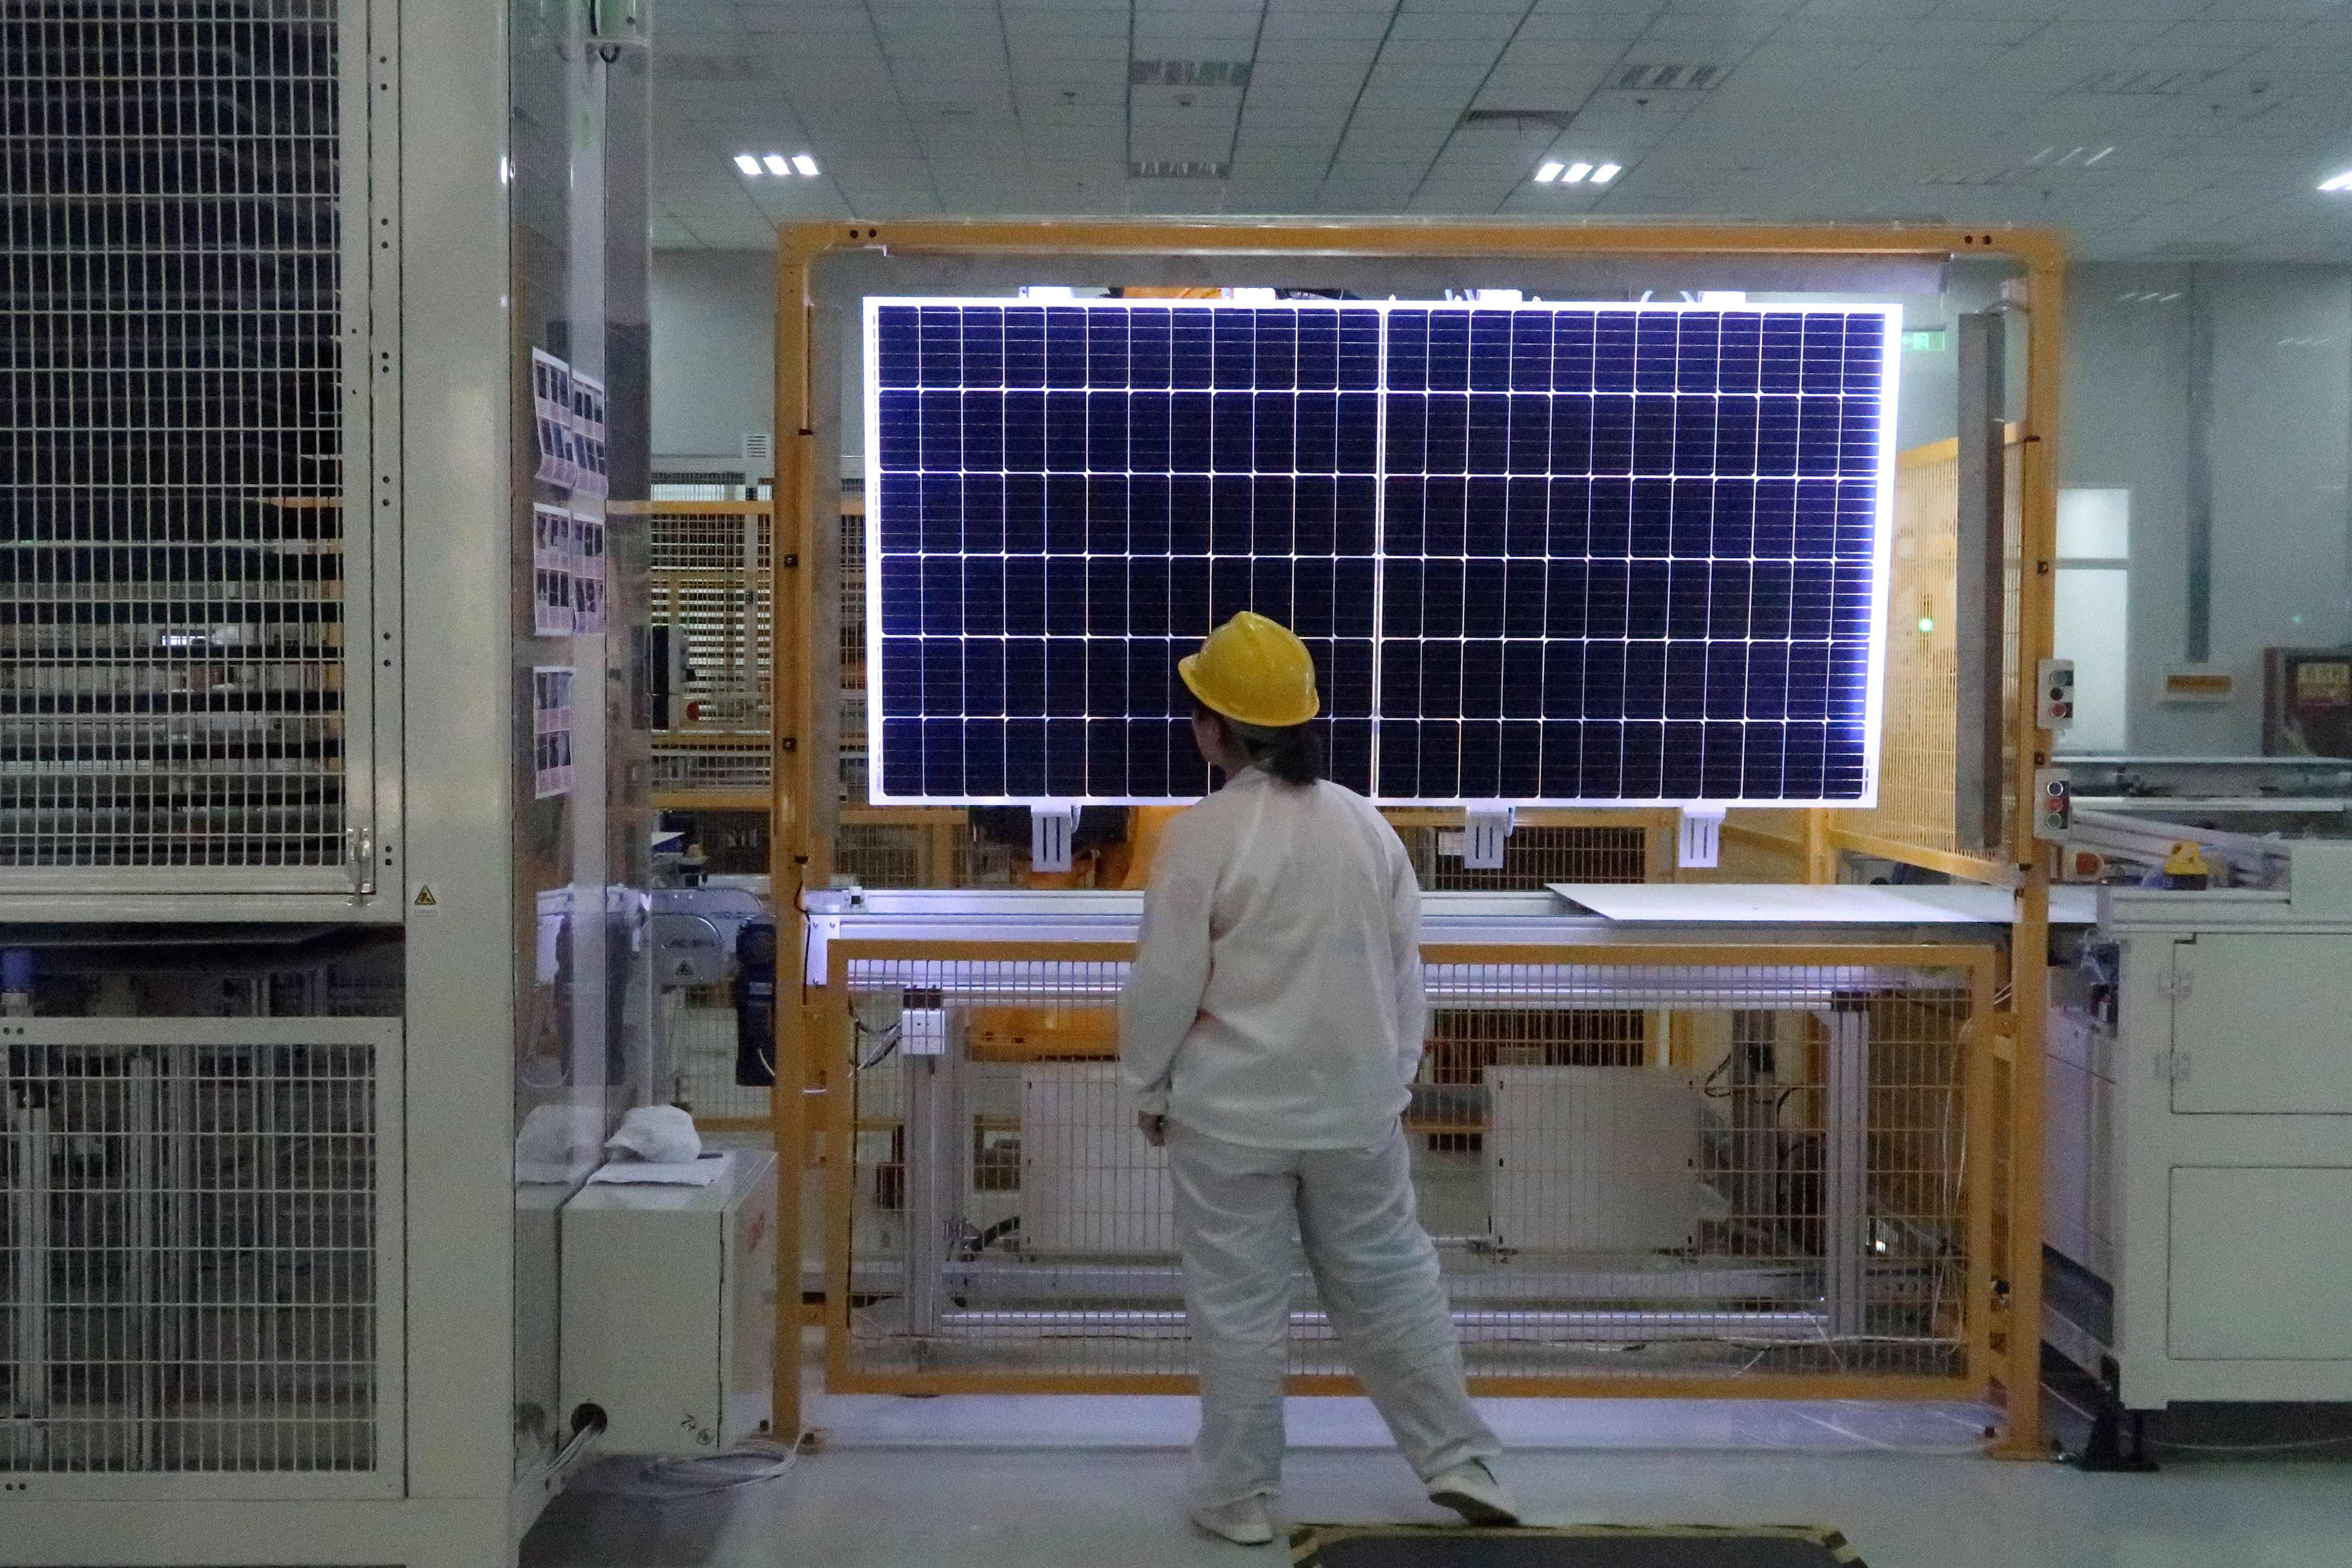 A worker conducts quality-check of a solar module product at a factory of a monocrystalline silicon solar equipment manufacturer LONGi Green Technology Co, in Xian, Shaanxi province, China December 10, 2019. Picture taken December 10, 2019. REUTERS/Muyu Xu - RC2JXD9MAGM8